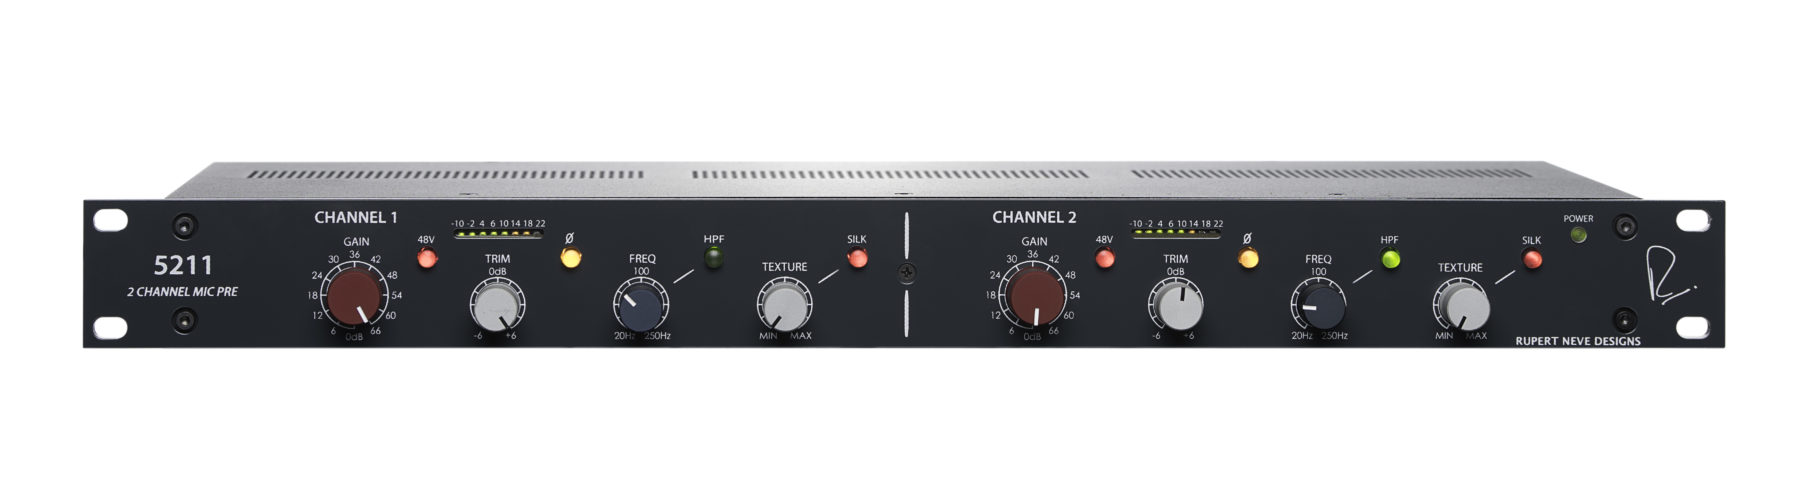 Rupert Neve Designs 5211 2 Channel Mic Preamp Preamplifier Circuit Low Noise Microphone